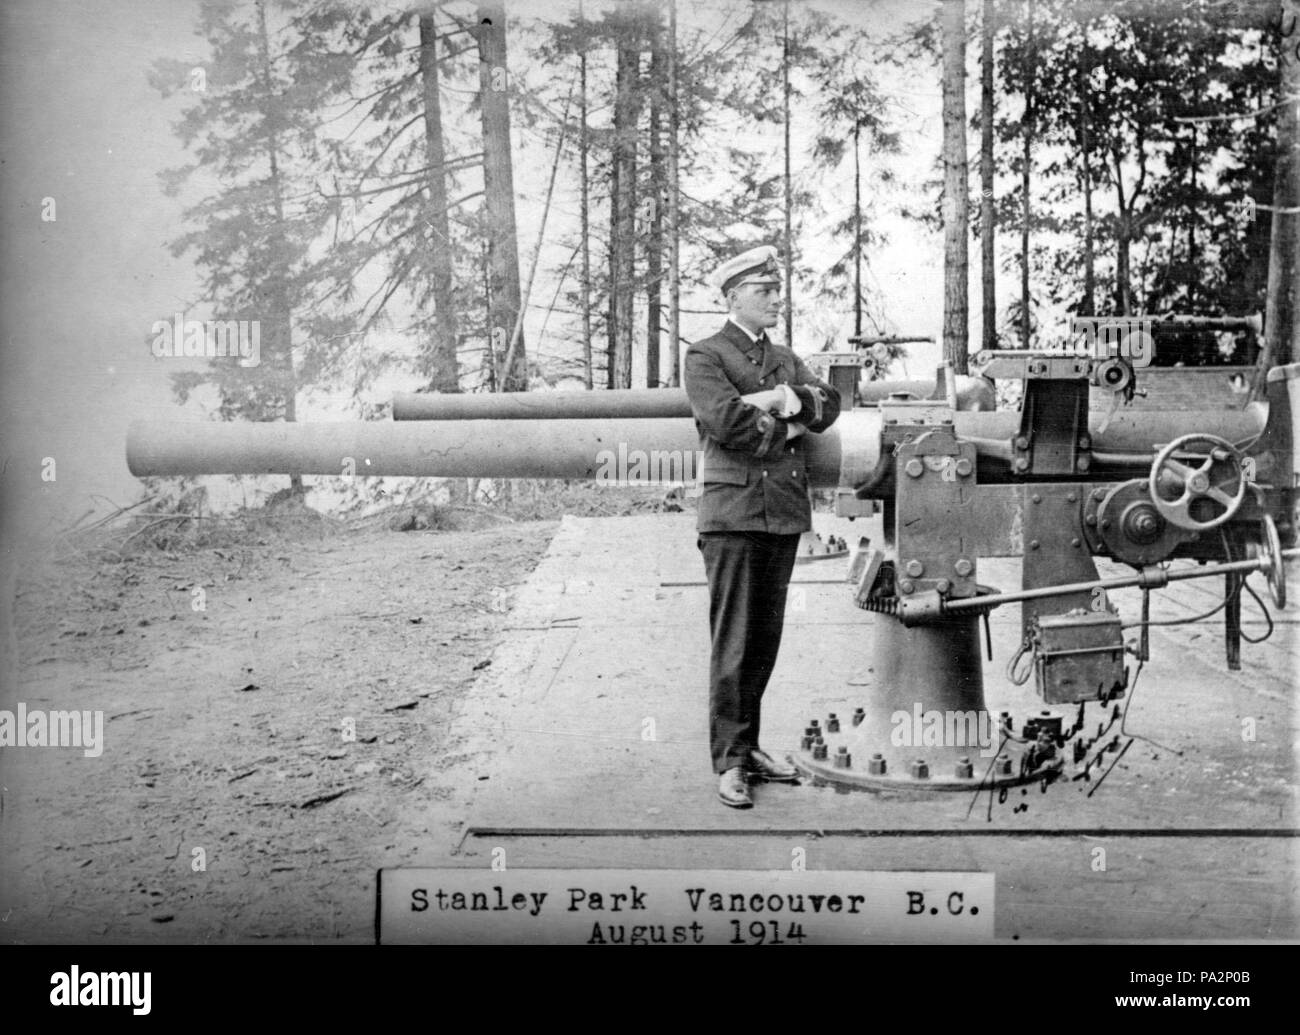 208 QF 4-inch guns in Stanley Park Aug 1914 - Stock Image